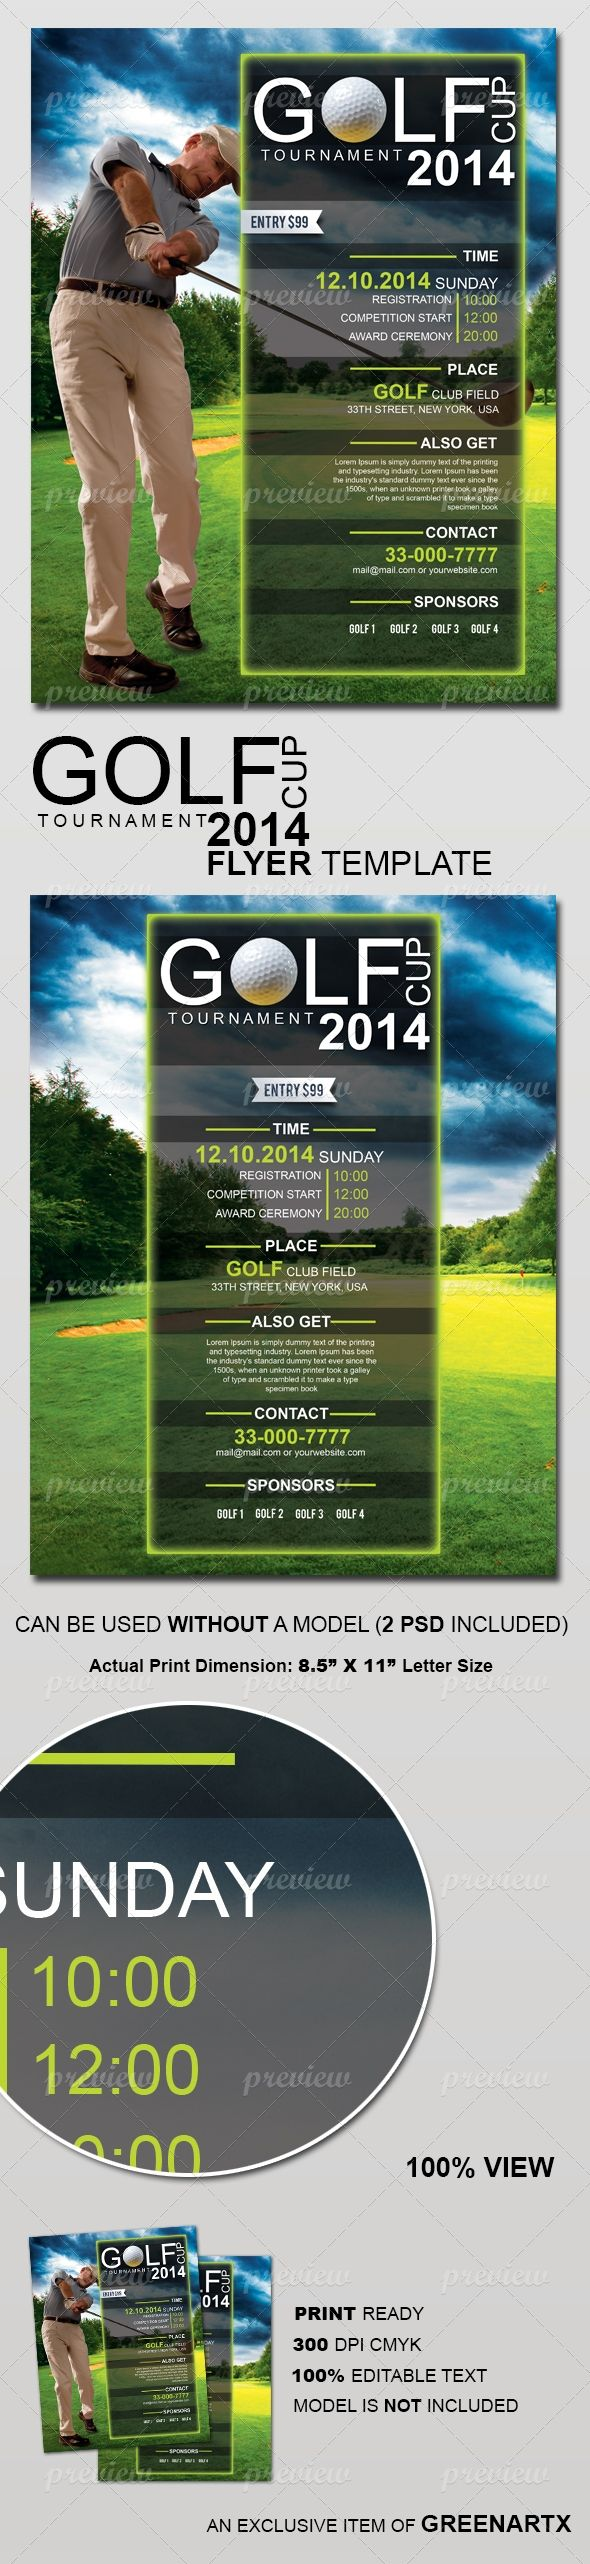 golf course open house flyer templates used books house and events golf cup tour nt flyer template